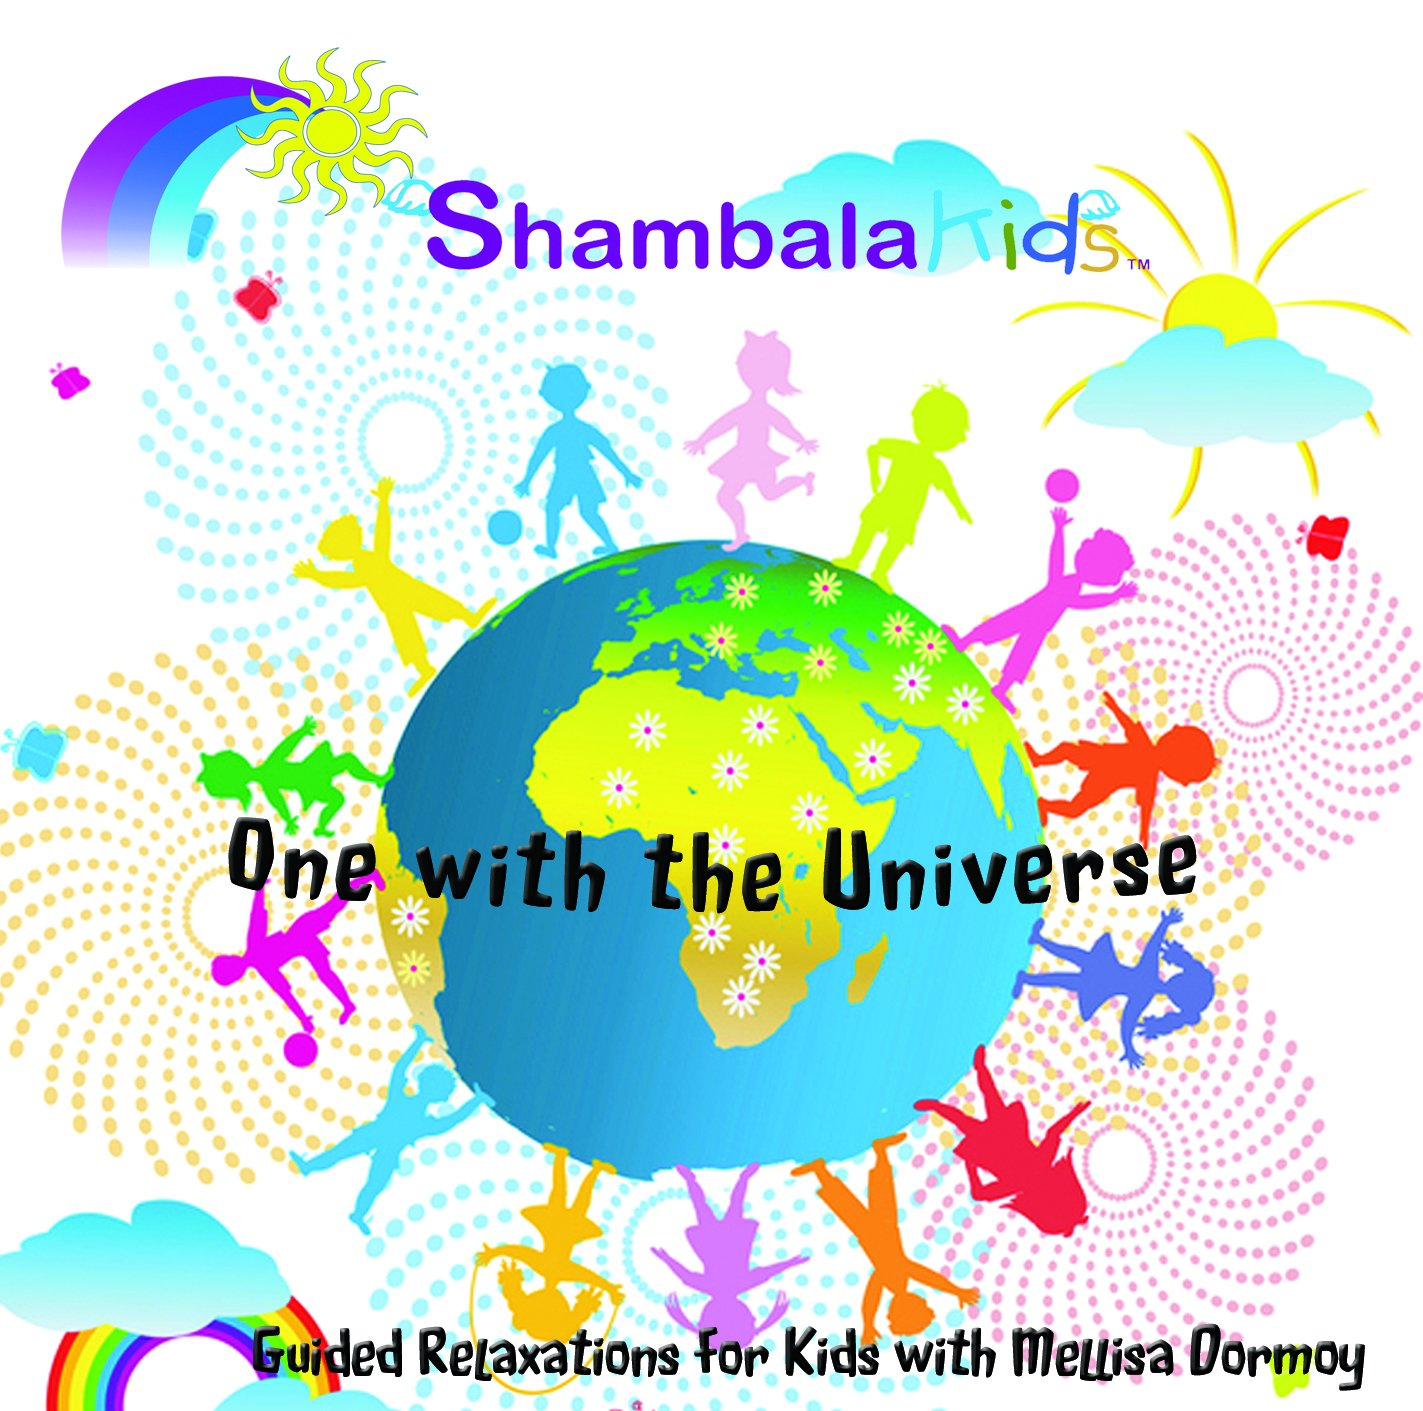 ShambalaKids - One with Universe the Kids' Our Cheap bargain shop most popular Meditation